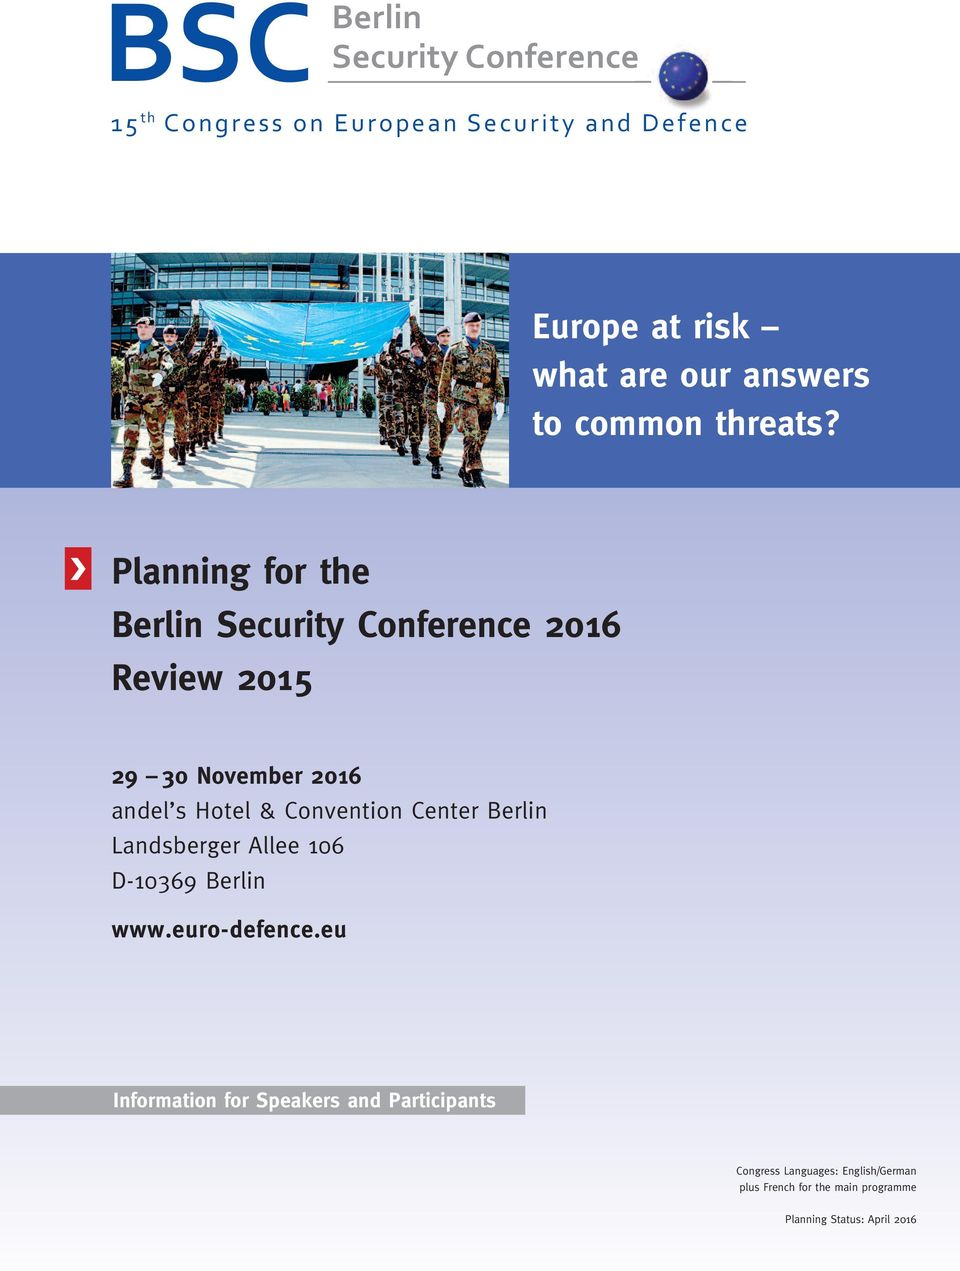 Planning for the Berlin Security Conference 2016 Review 2015 29 30 November 2016 andel s Hotel & Convention Center